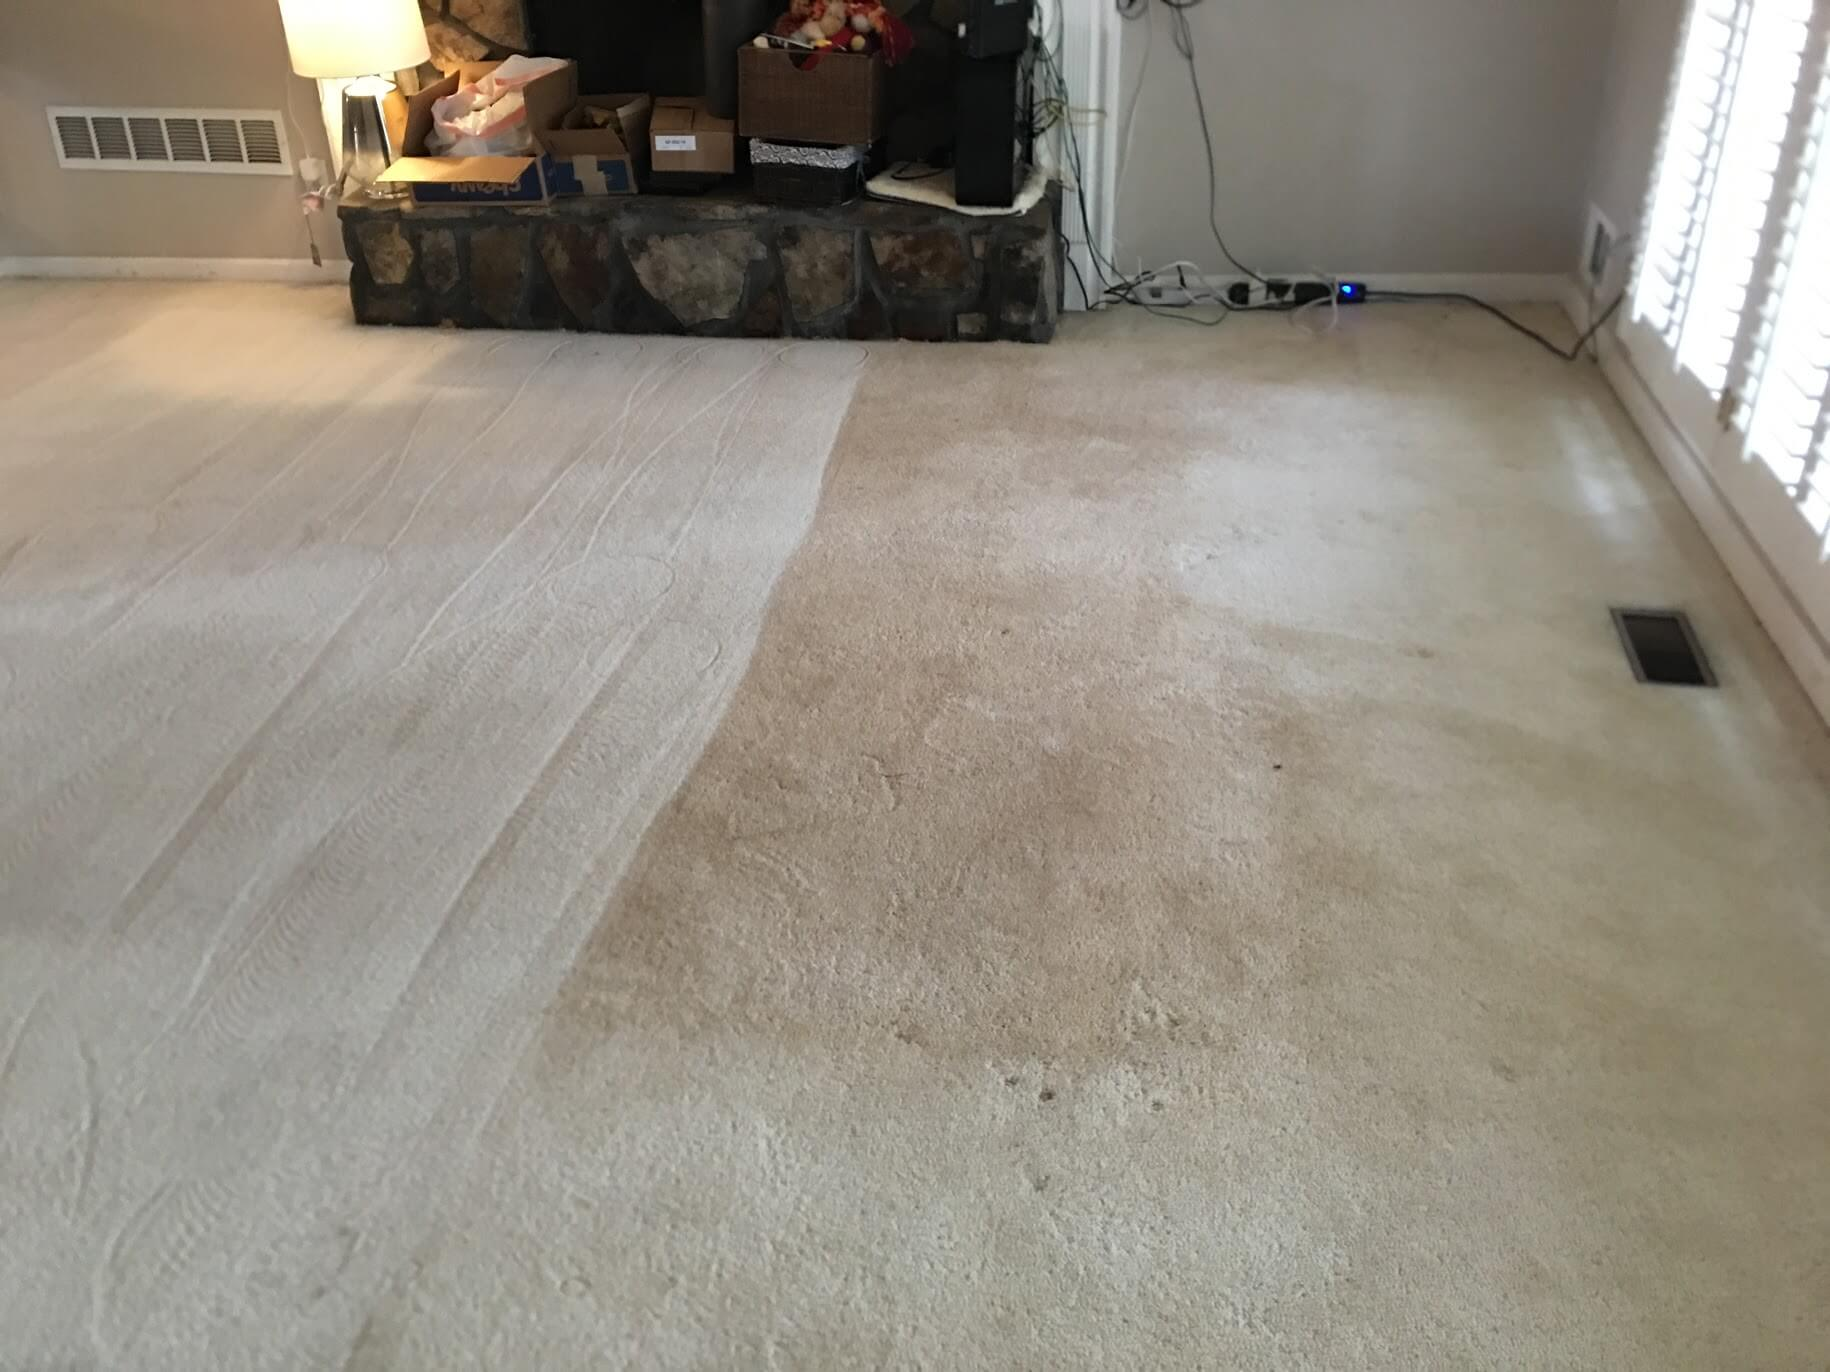 after K&C Chem-Dry carpet cleaning in gwinnett county ga